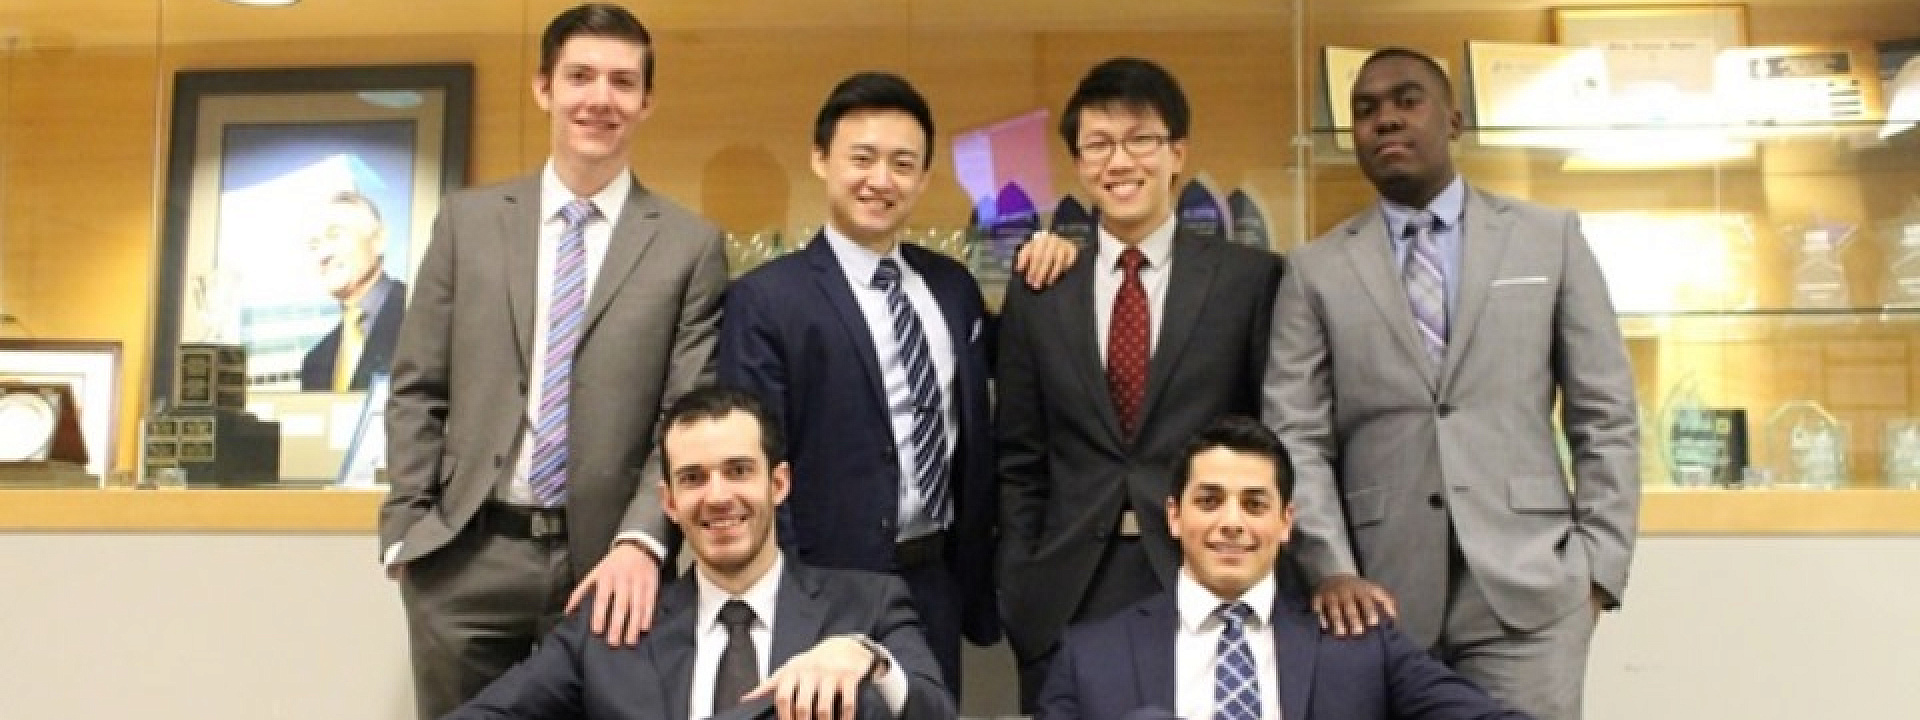 Telfer Performs at World's Largest Trading Competition in Toronto